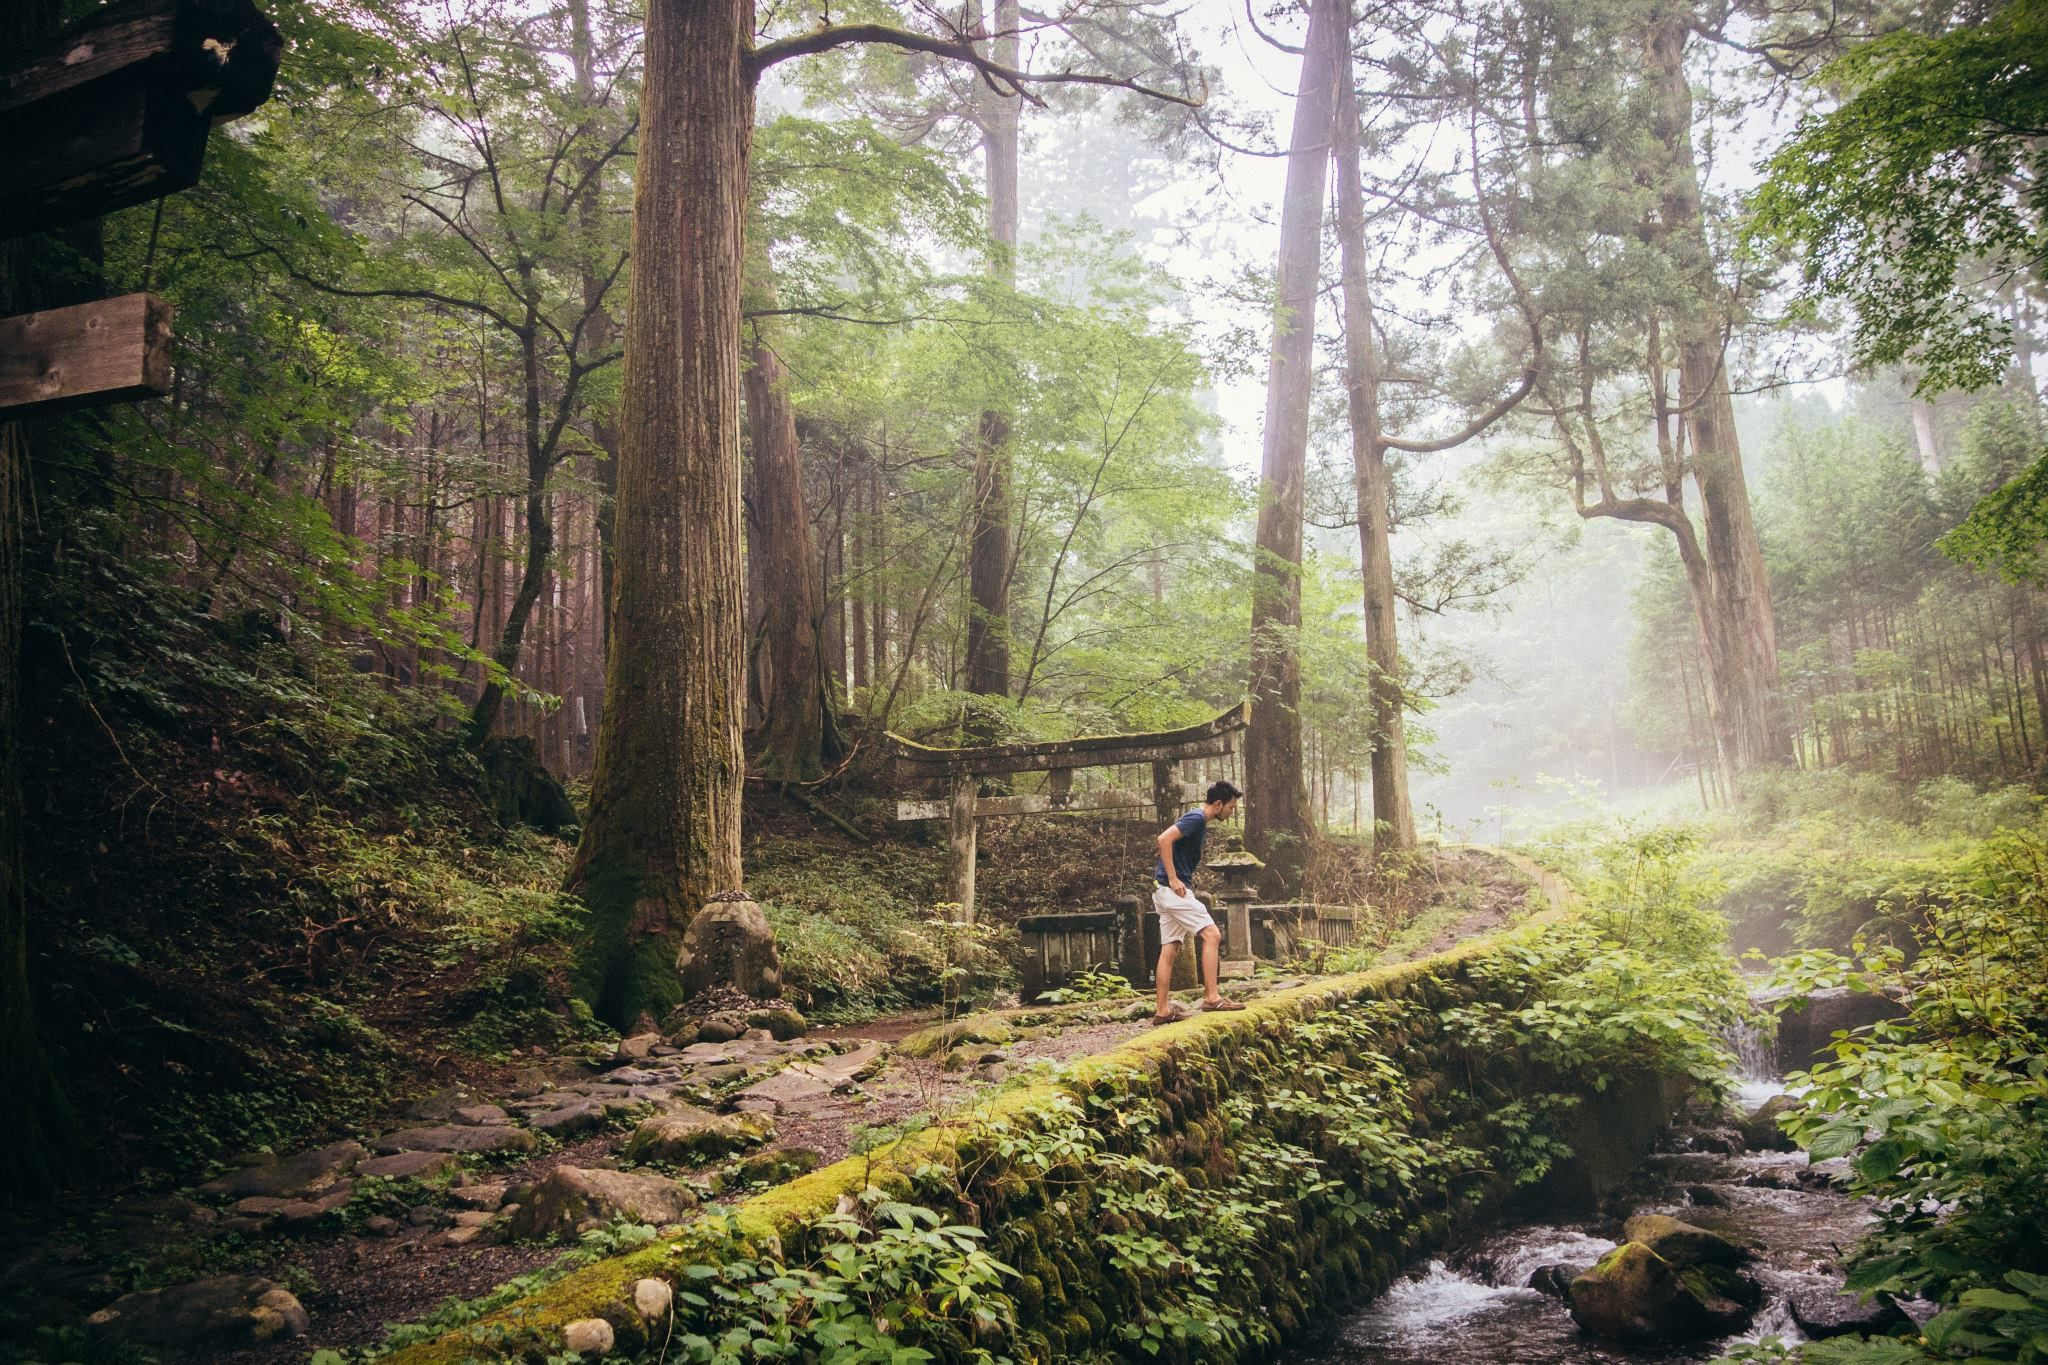 japanese forrest - Google Search